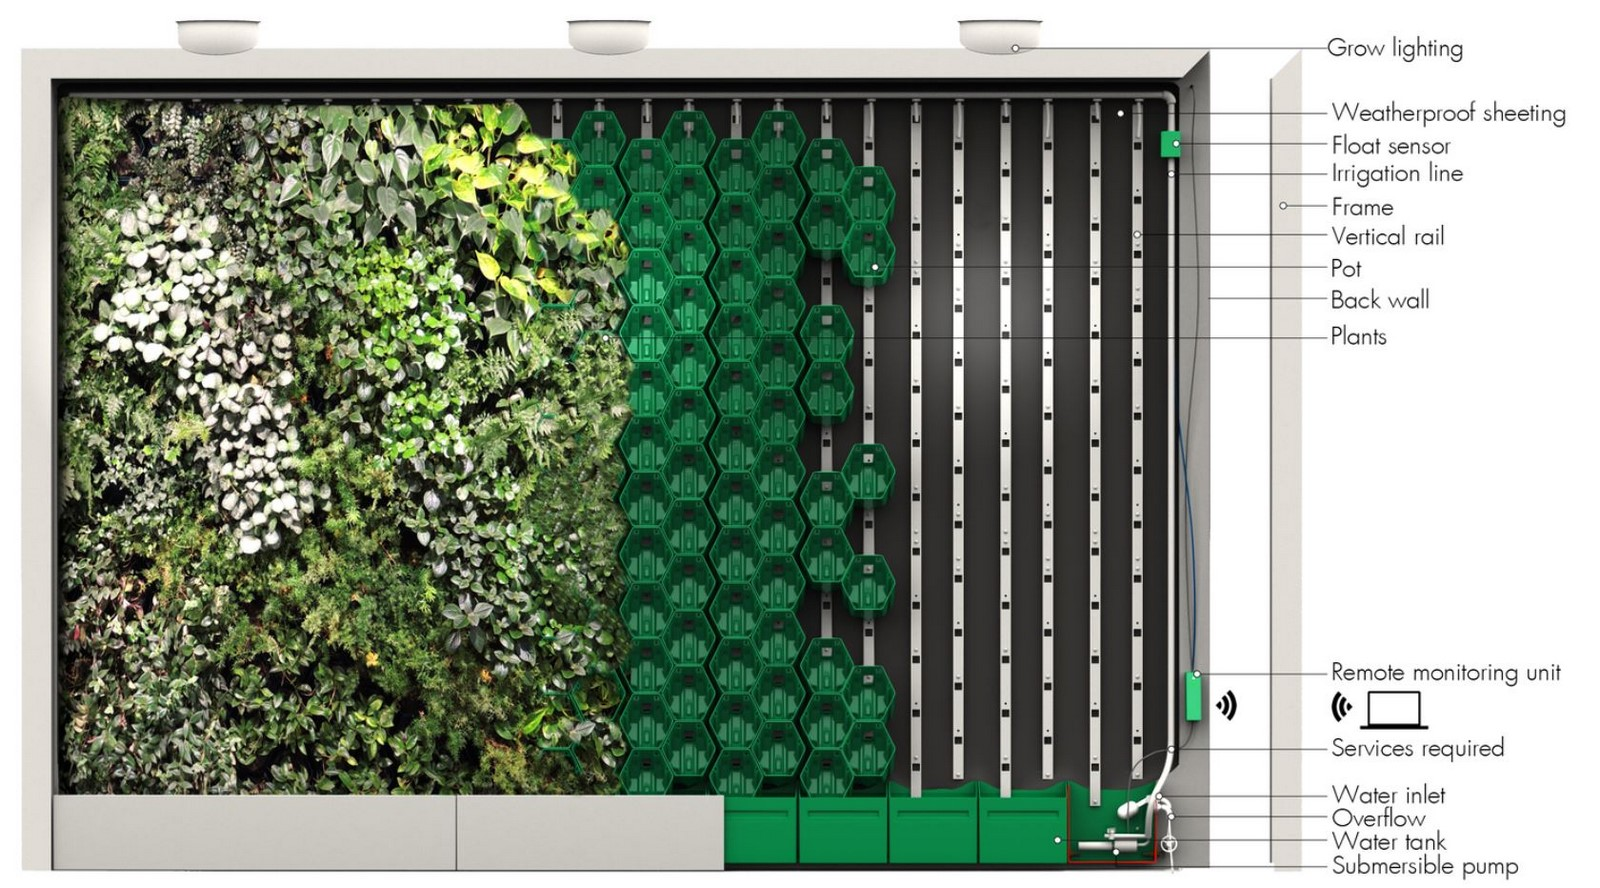 10 things you did not know about Green walls - Sheet4